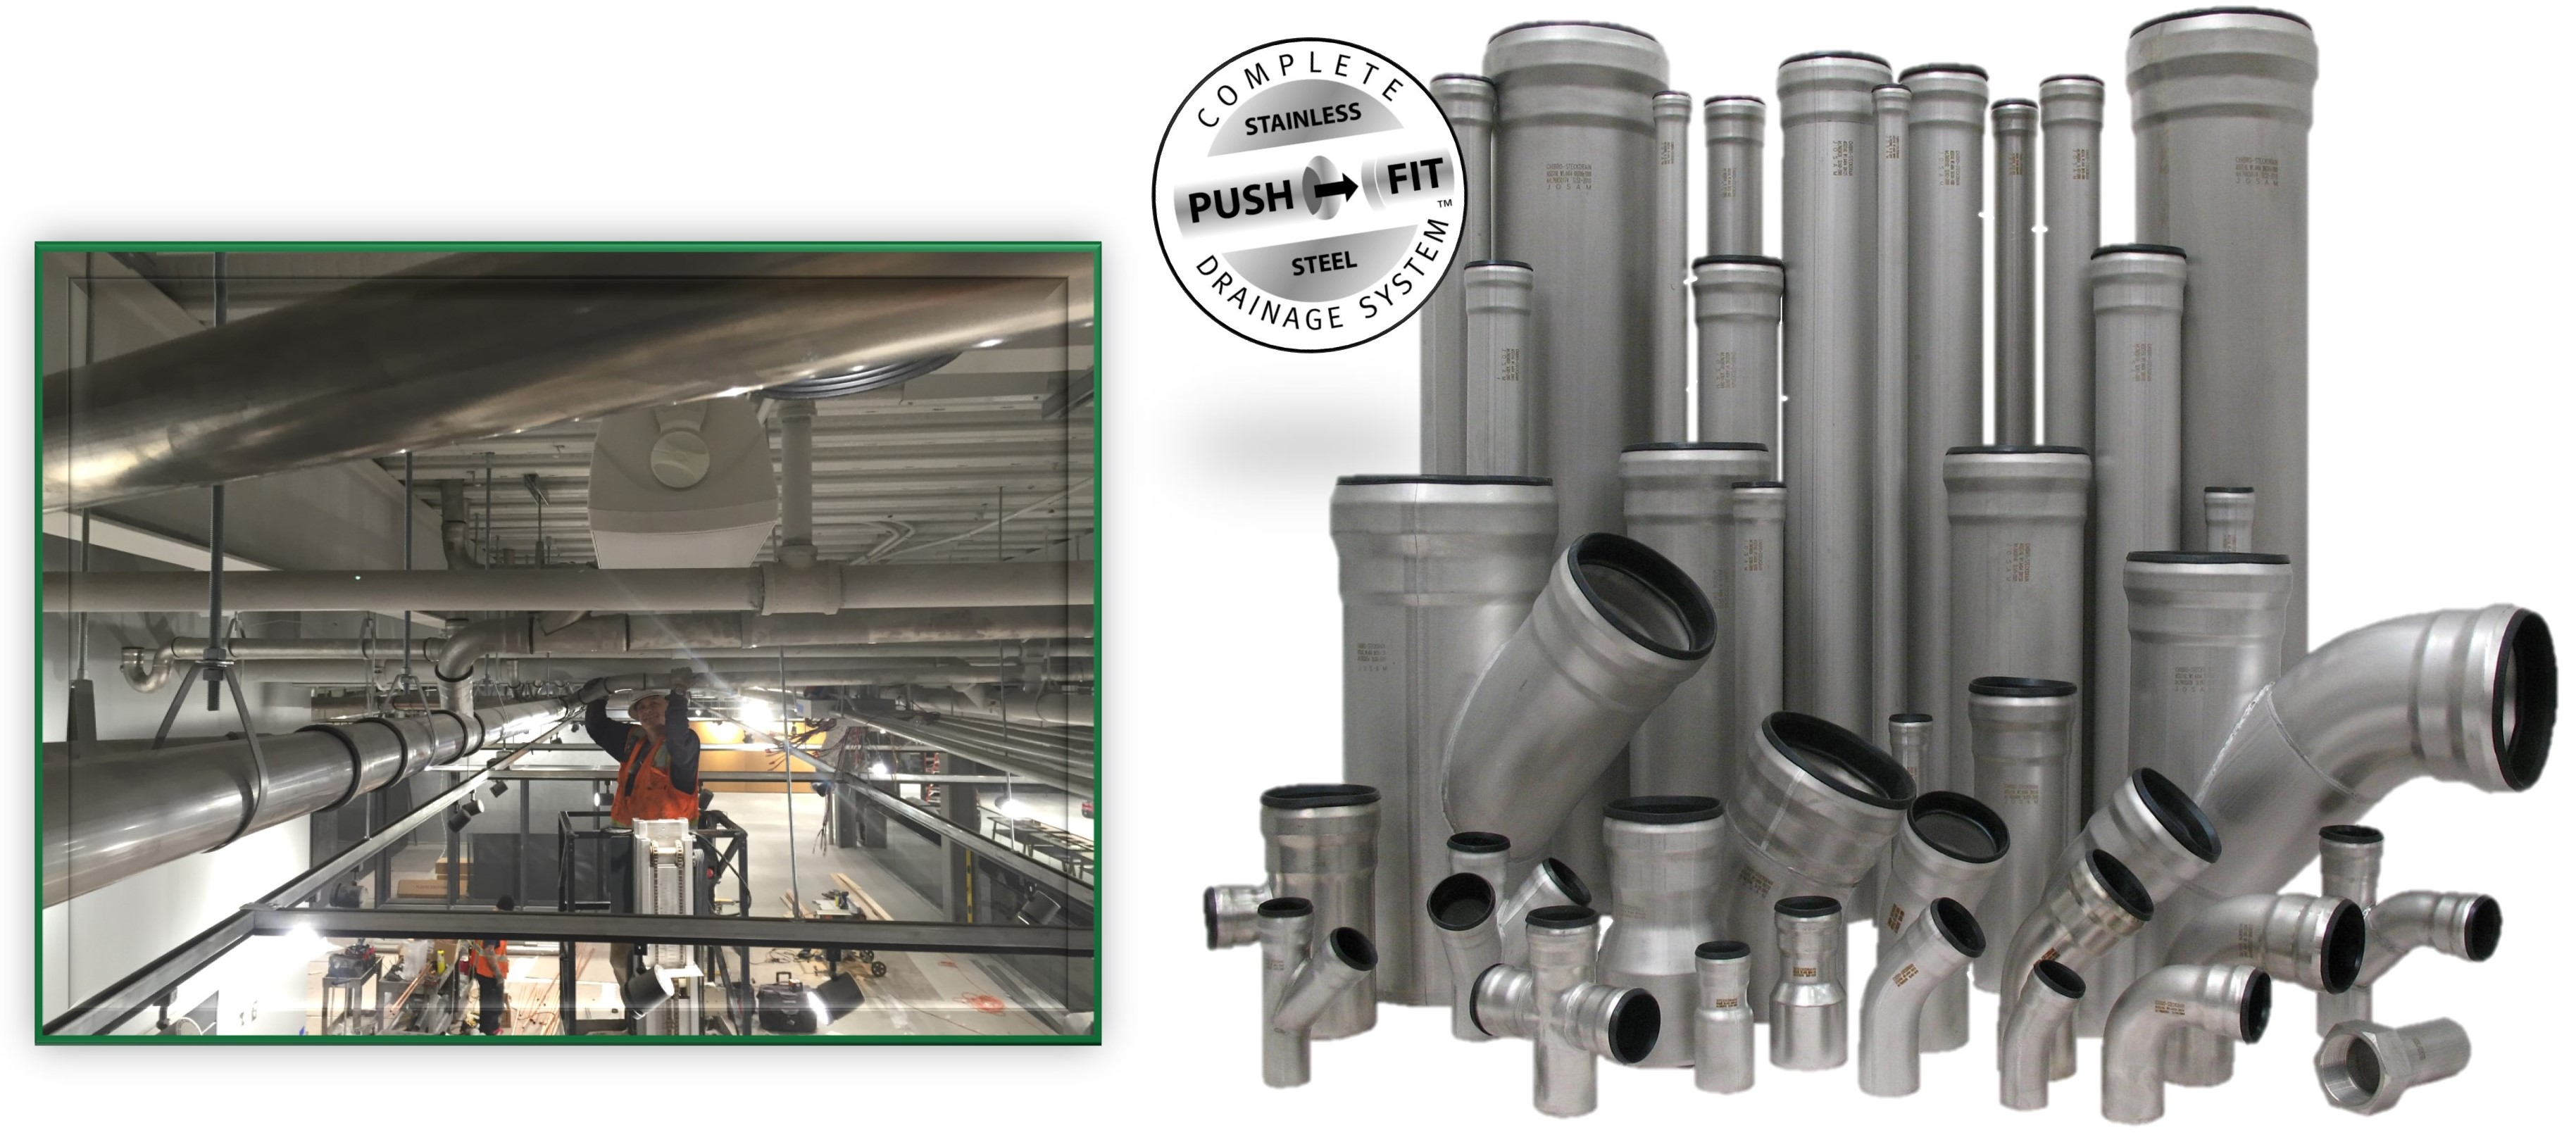 Push-Fit Stainless Steel Products